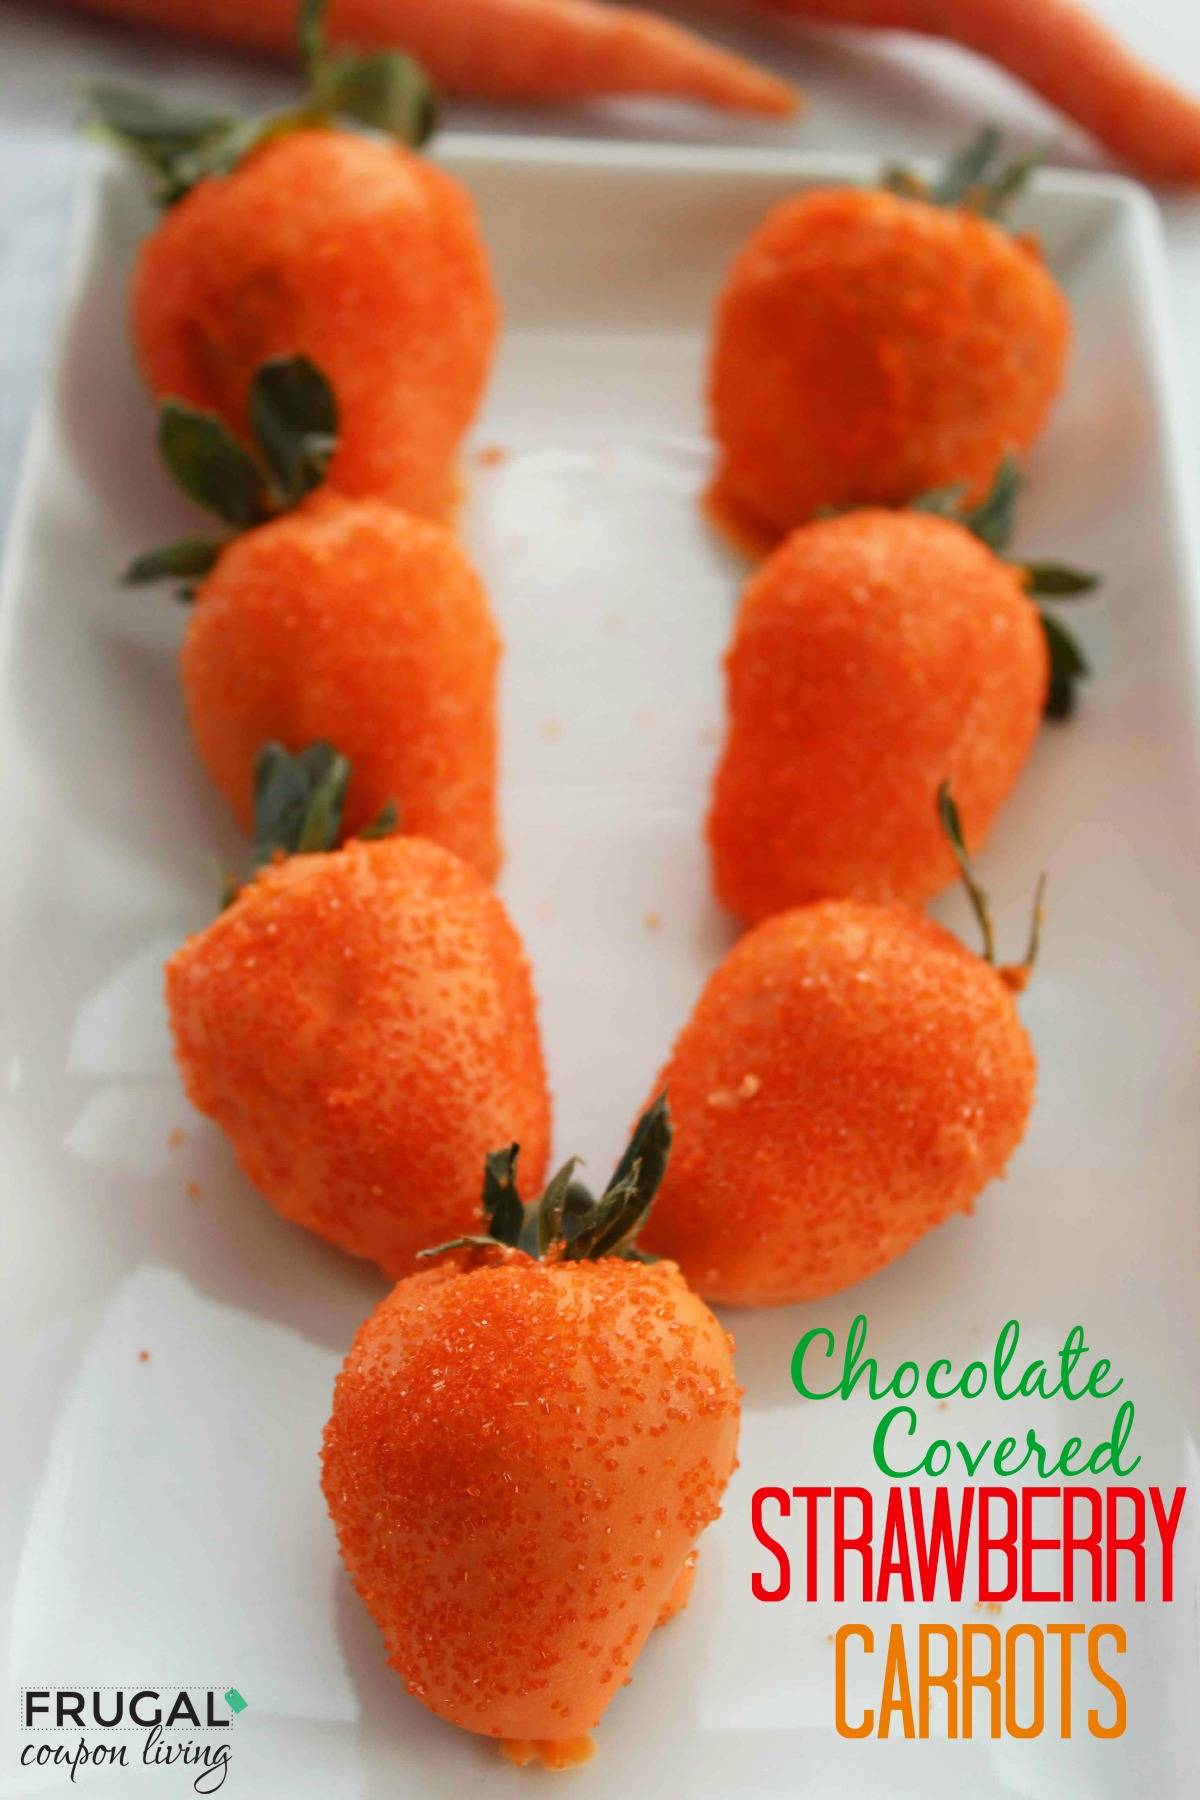 chocolate-covered-strawberry-carrots-frugal-coupon-living